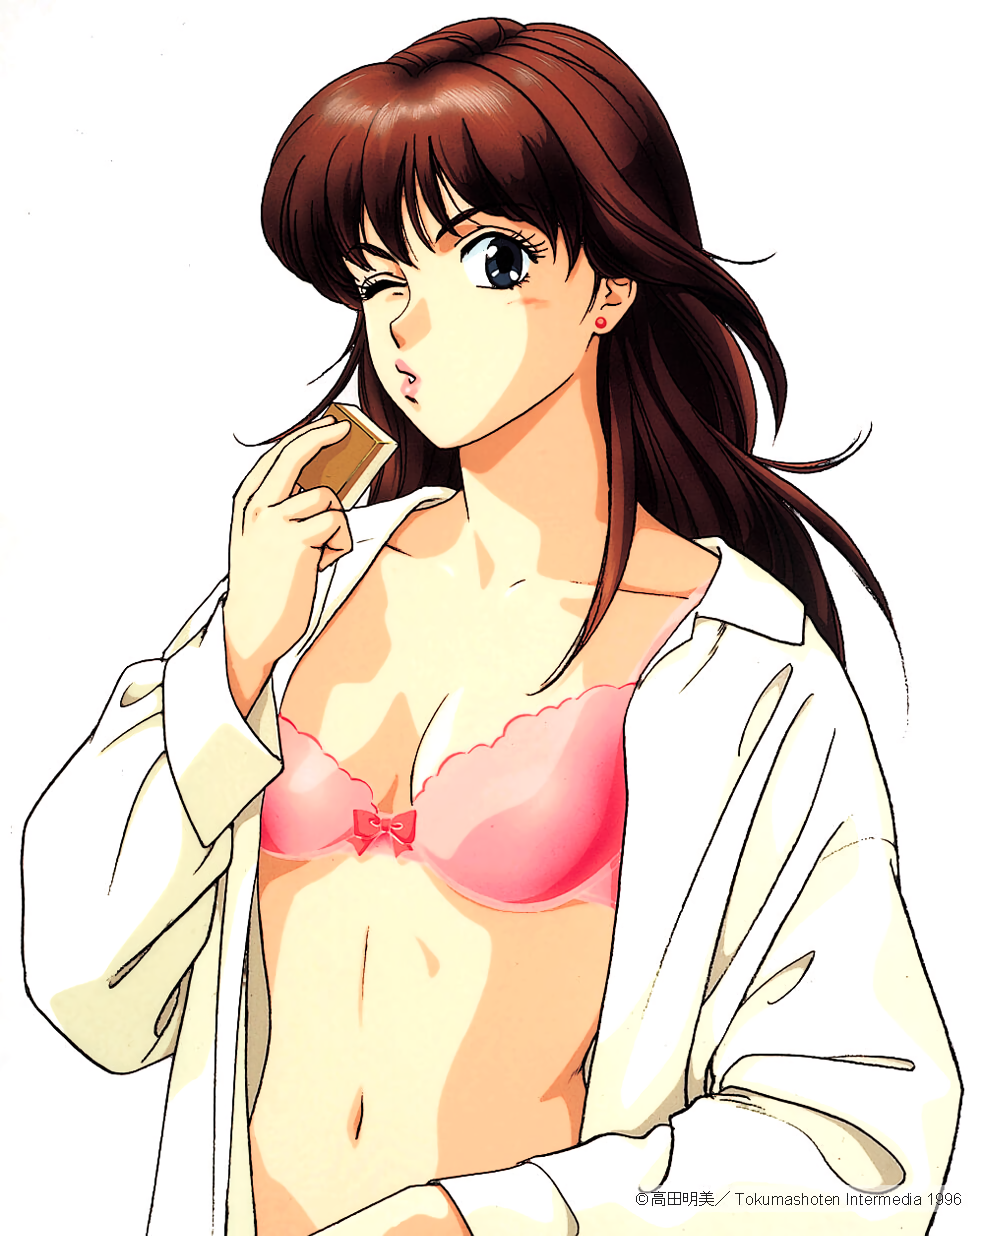 1990s_(style) 1996 1girl blue_eyes bra brown_hair copyright dated dress_shirt earrings highres holding jewelry lips long_hair long_sleeves mahjong mahjong_tile navel one_eye_closed open_clothes open_shirt pc_engine_fan pink_bra puckered_lips shirt simple_background solo stud_earrings takada_akemi underwear white_background white_shirt